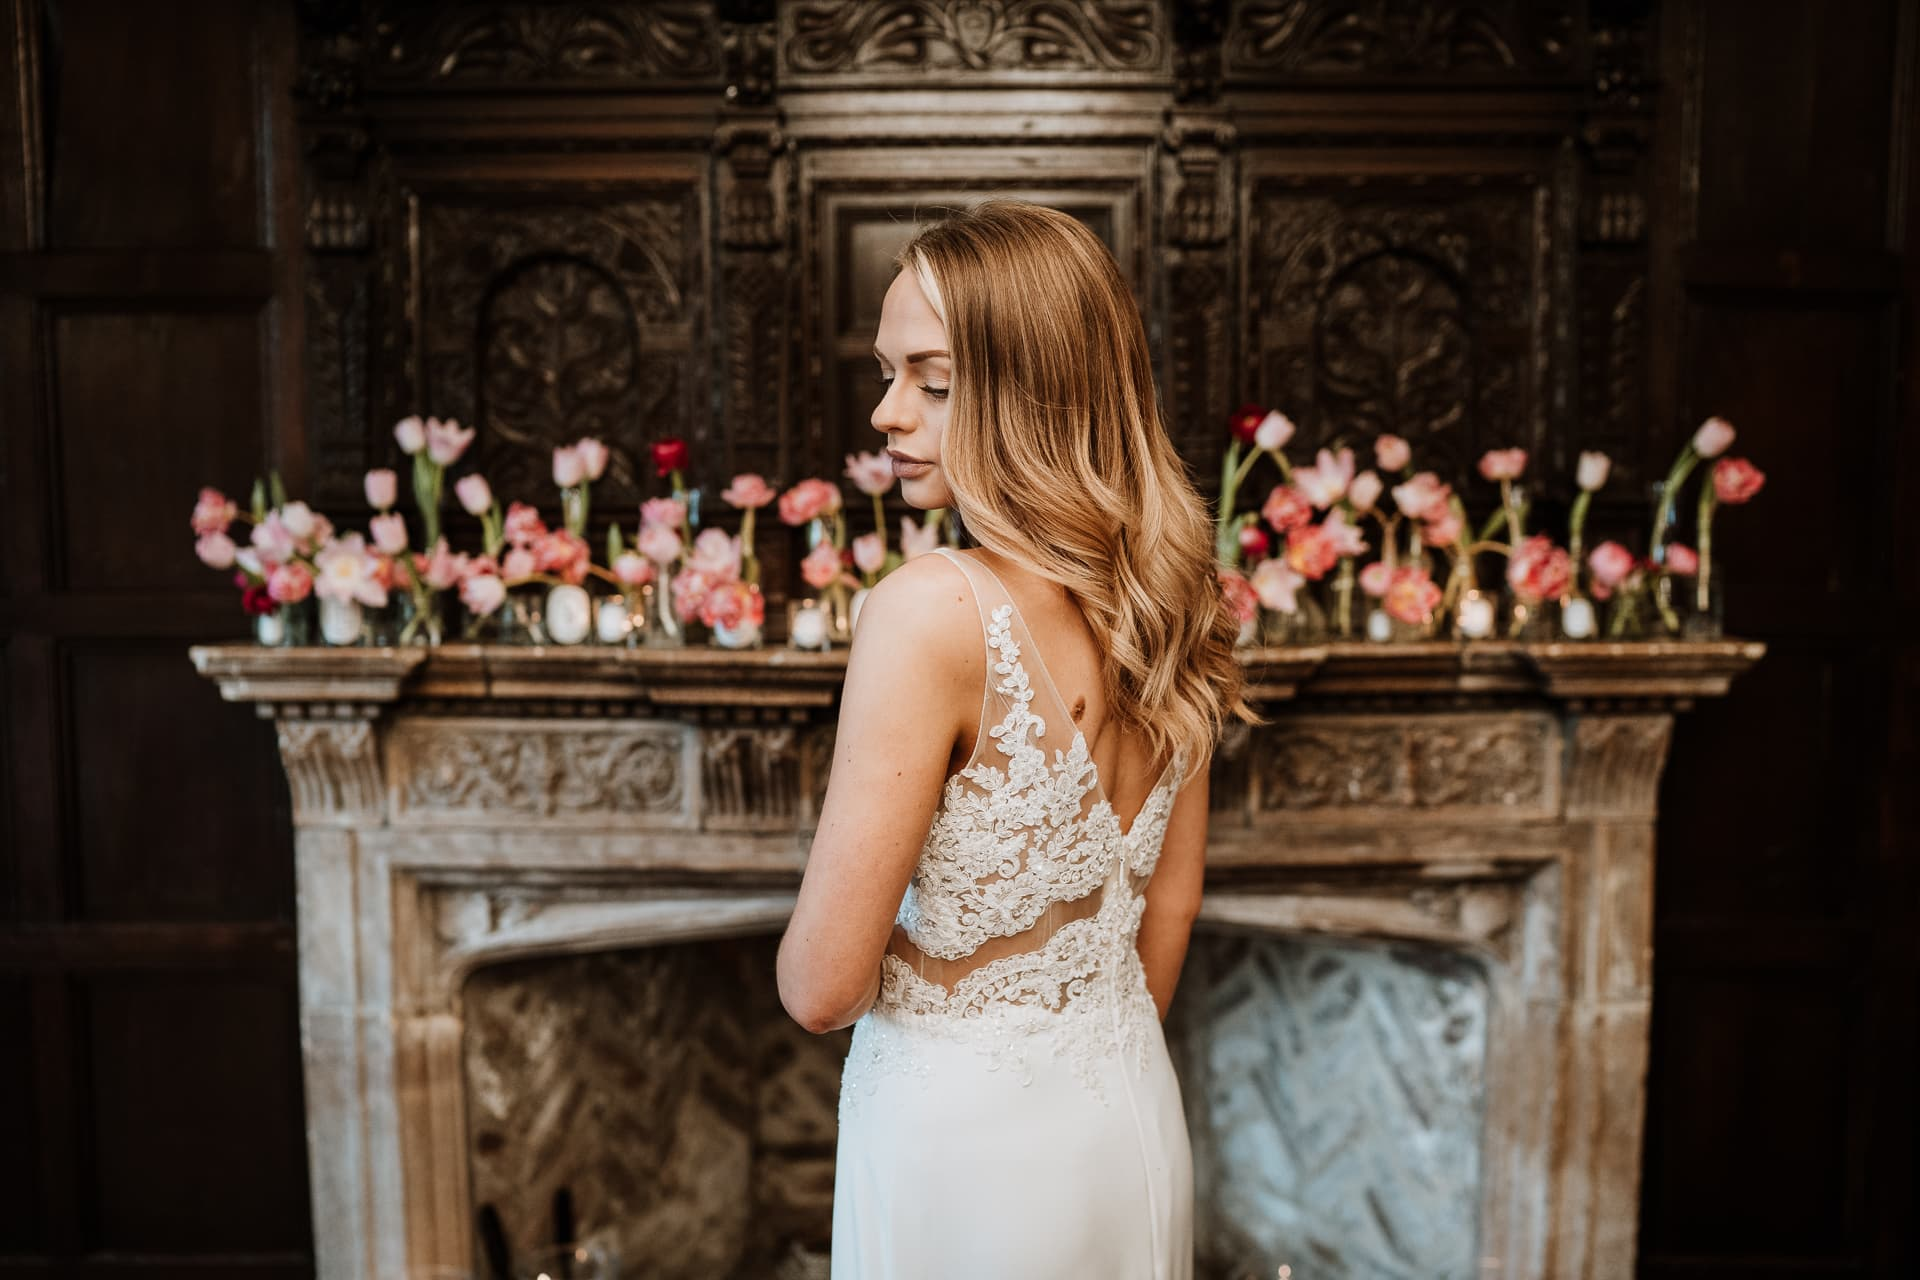 Stunning Bride in front of Bishop of Bayeux fireplace at Eastwell Manor